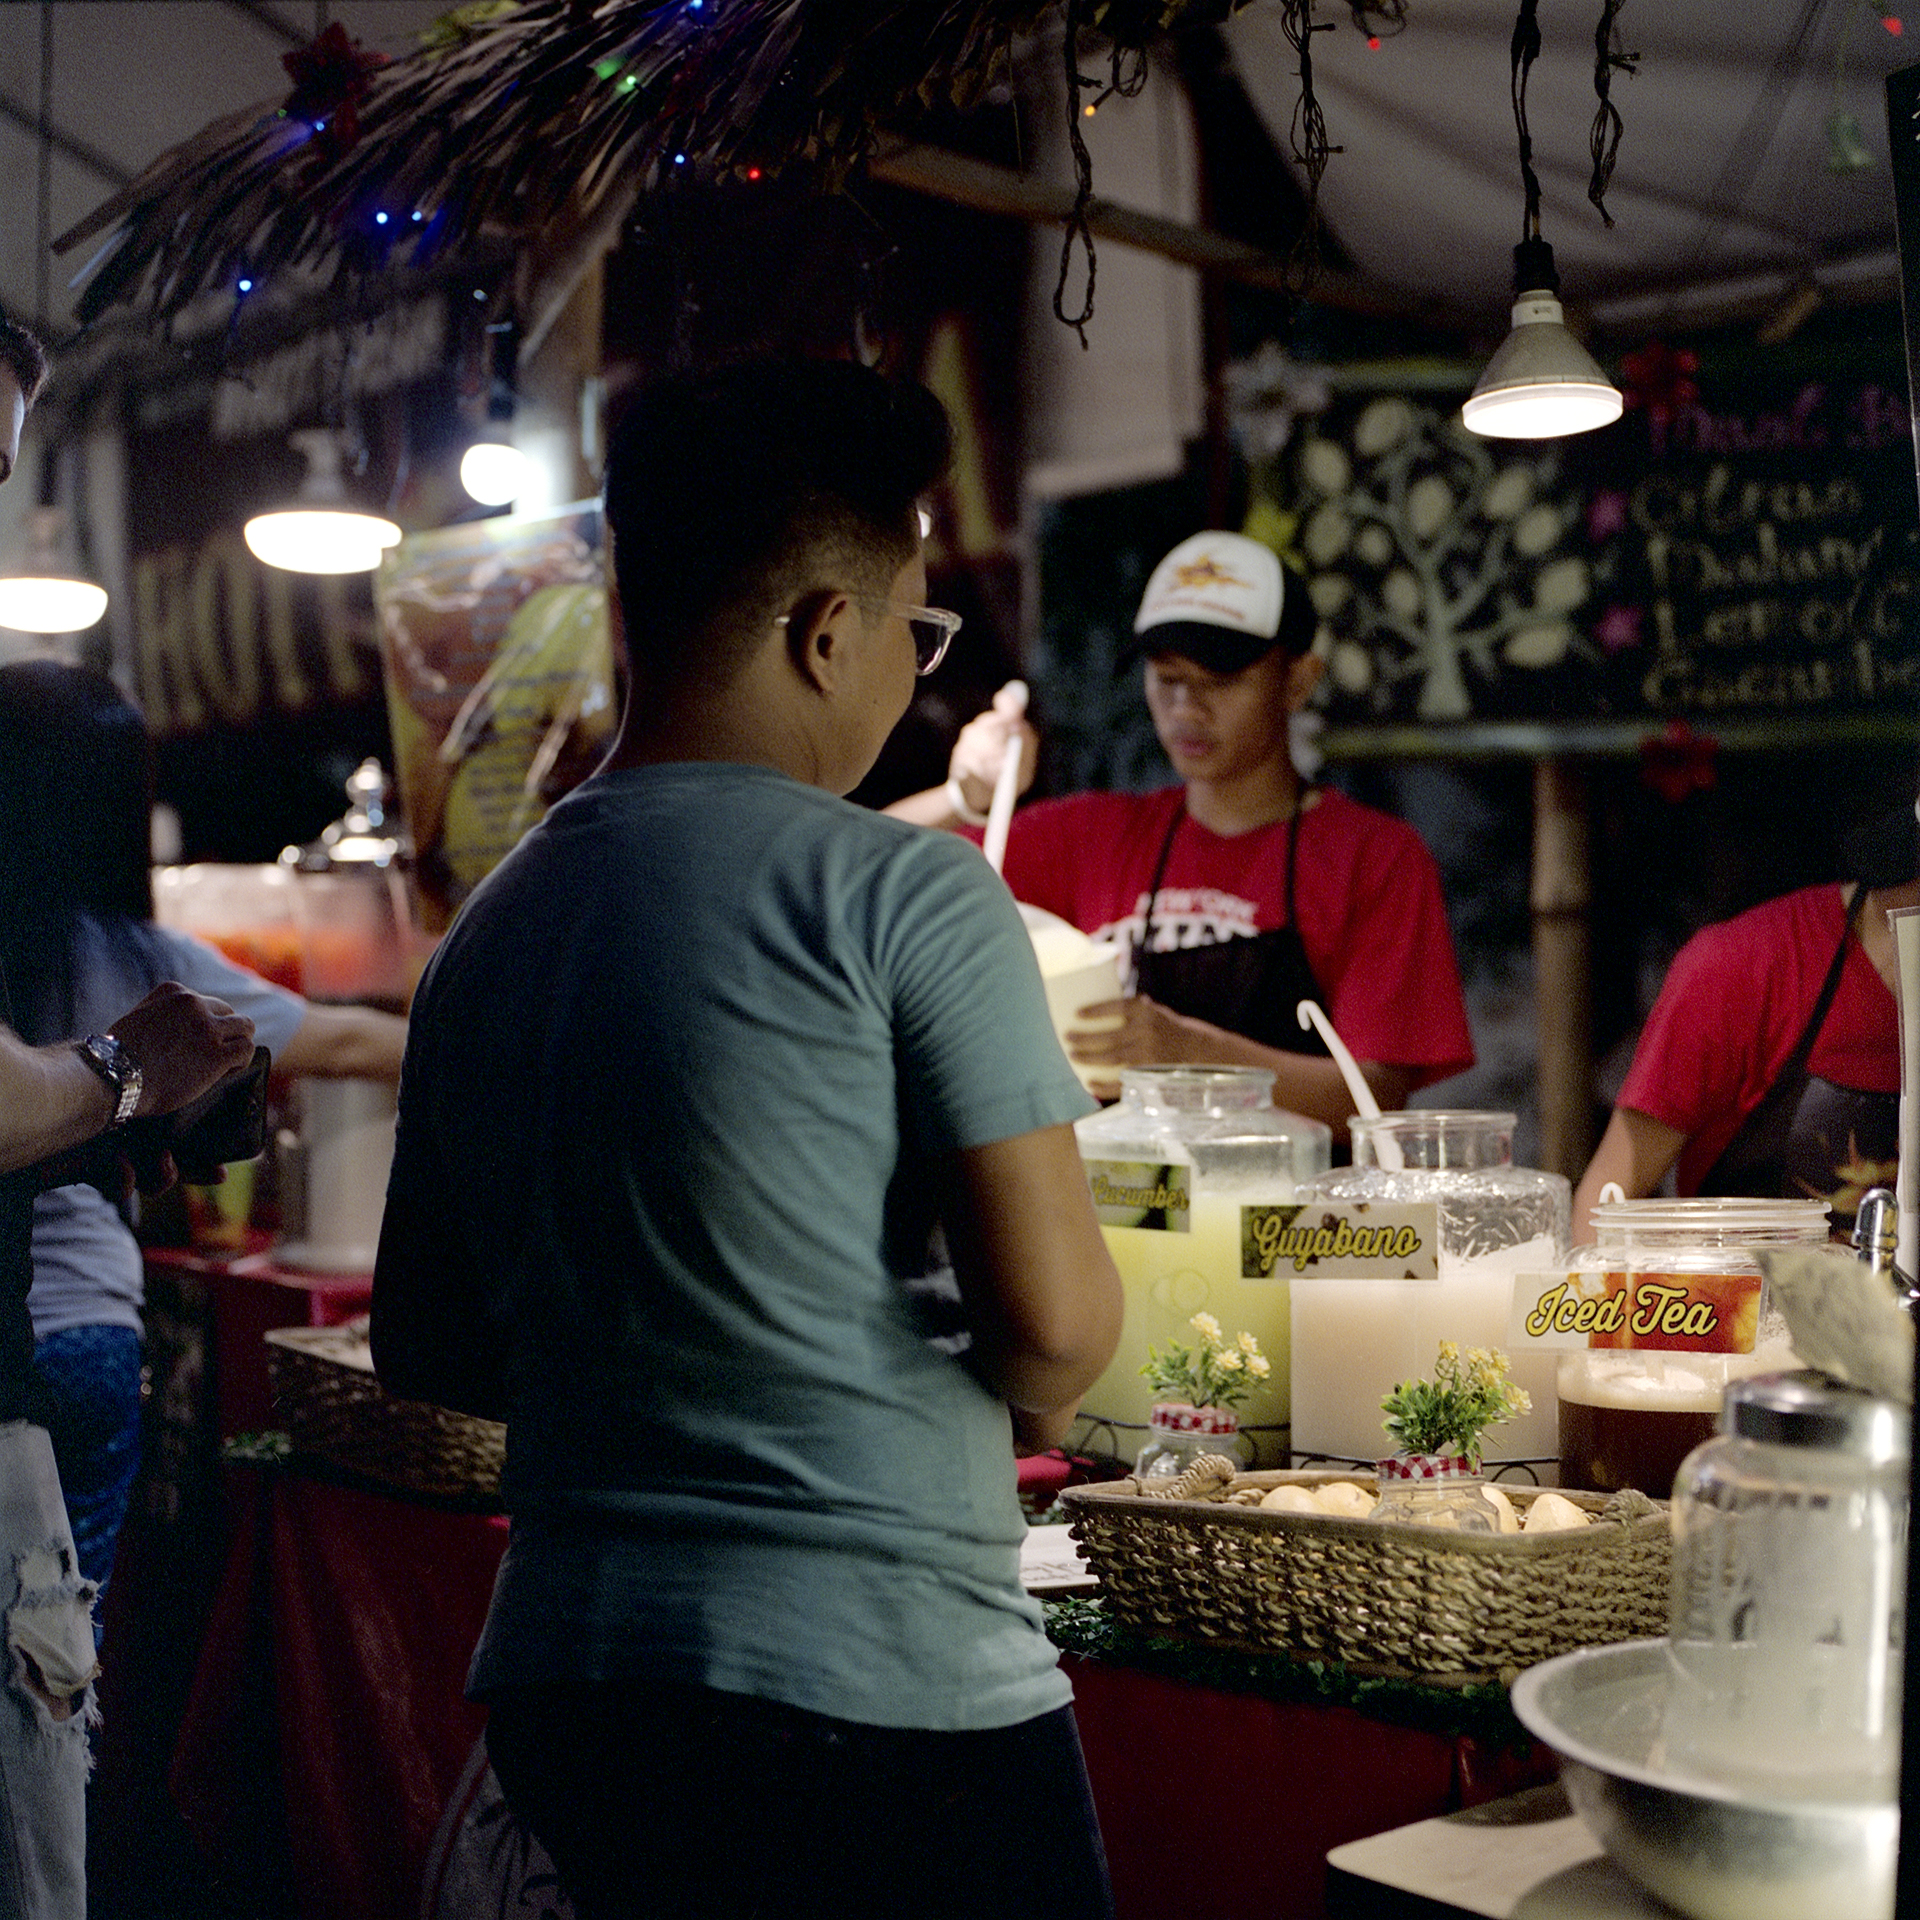 People getting different kinds of juices at a night market